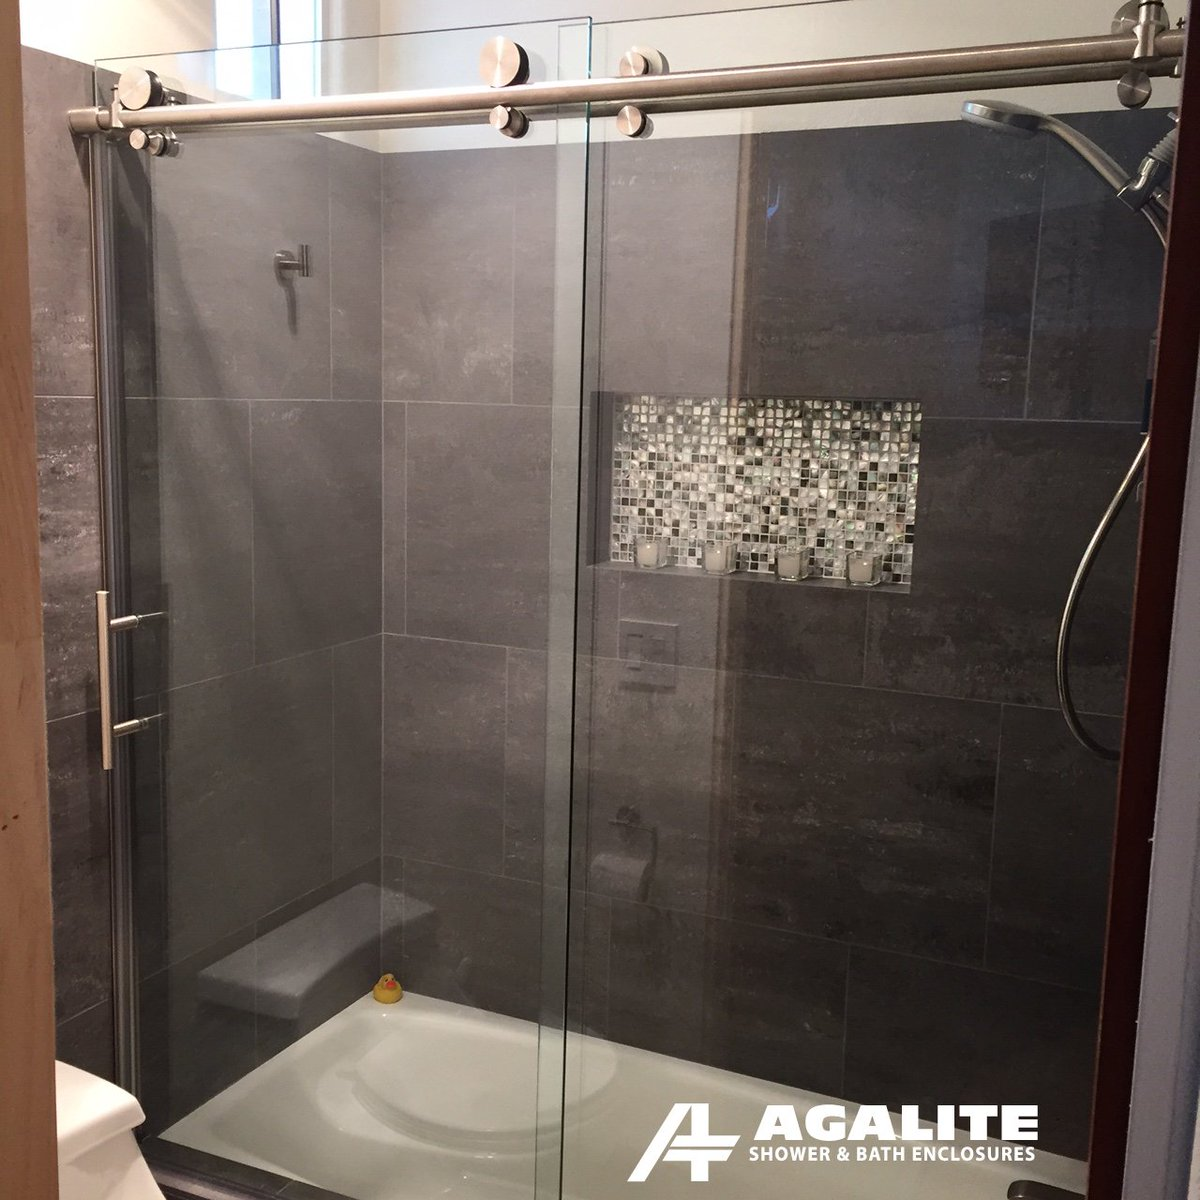 Hartung Glass On Twitter Gorgeous Agalite Transcend By Pass Tub